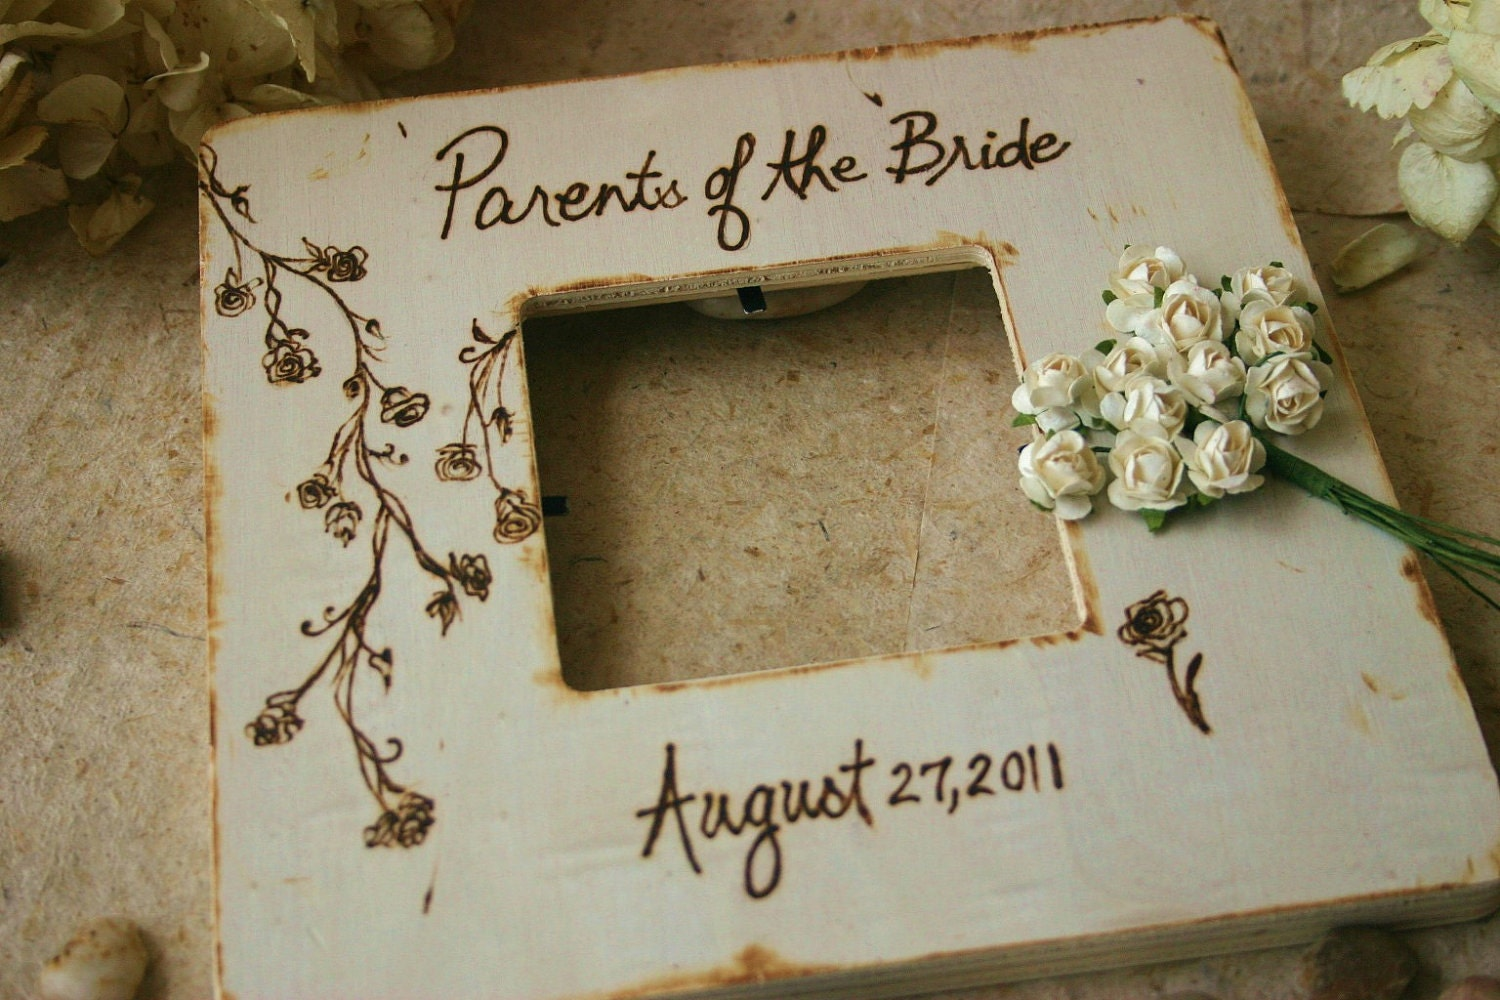 Parents Gift Wedding: Wedding Gifts For Parents Of Bride And Groom Set By